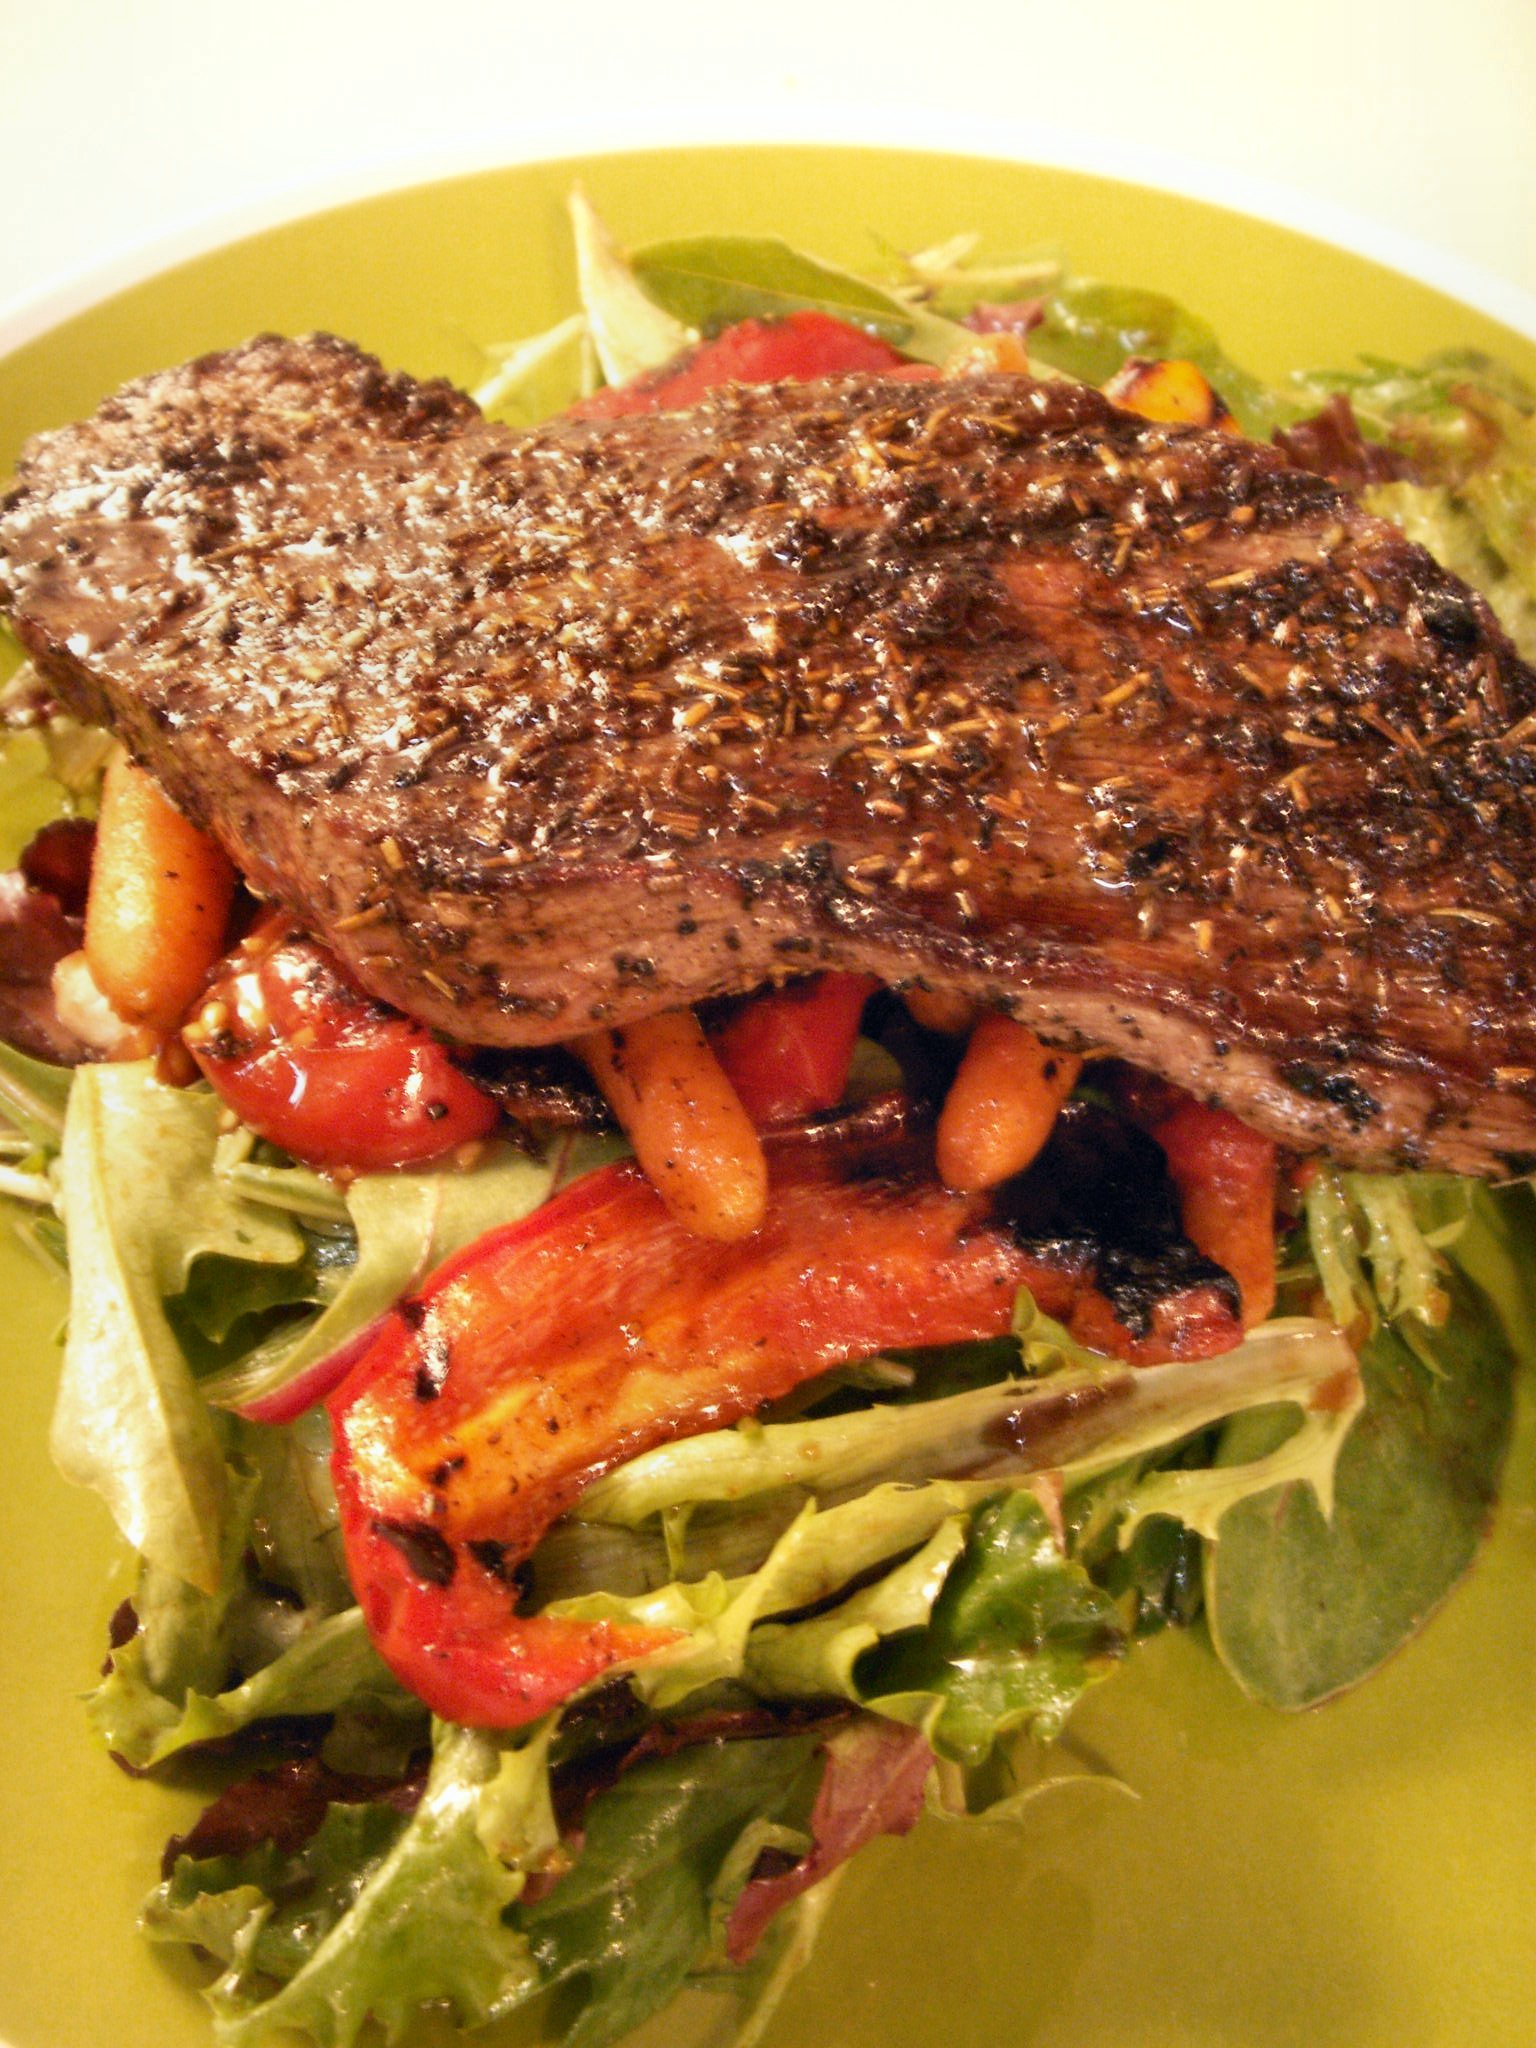 Grilled Herb Steak, Wild Salmon, and Summer Vegetable Salad